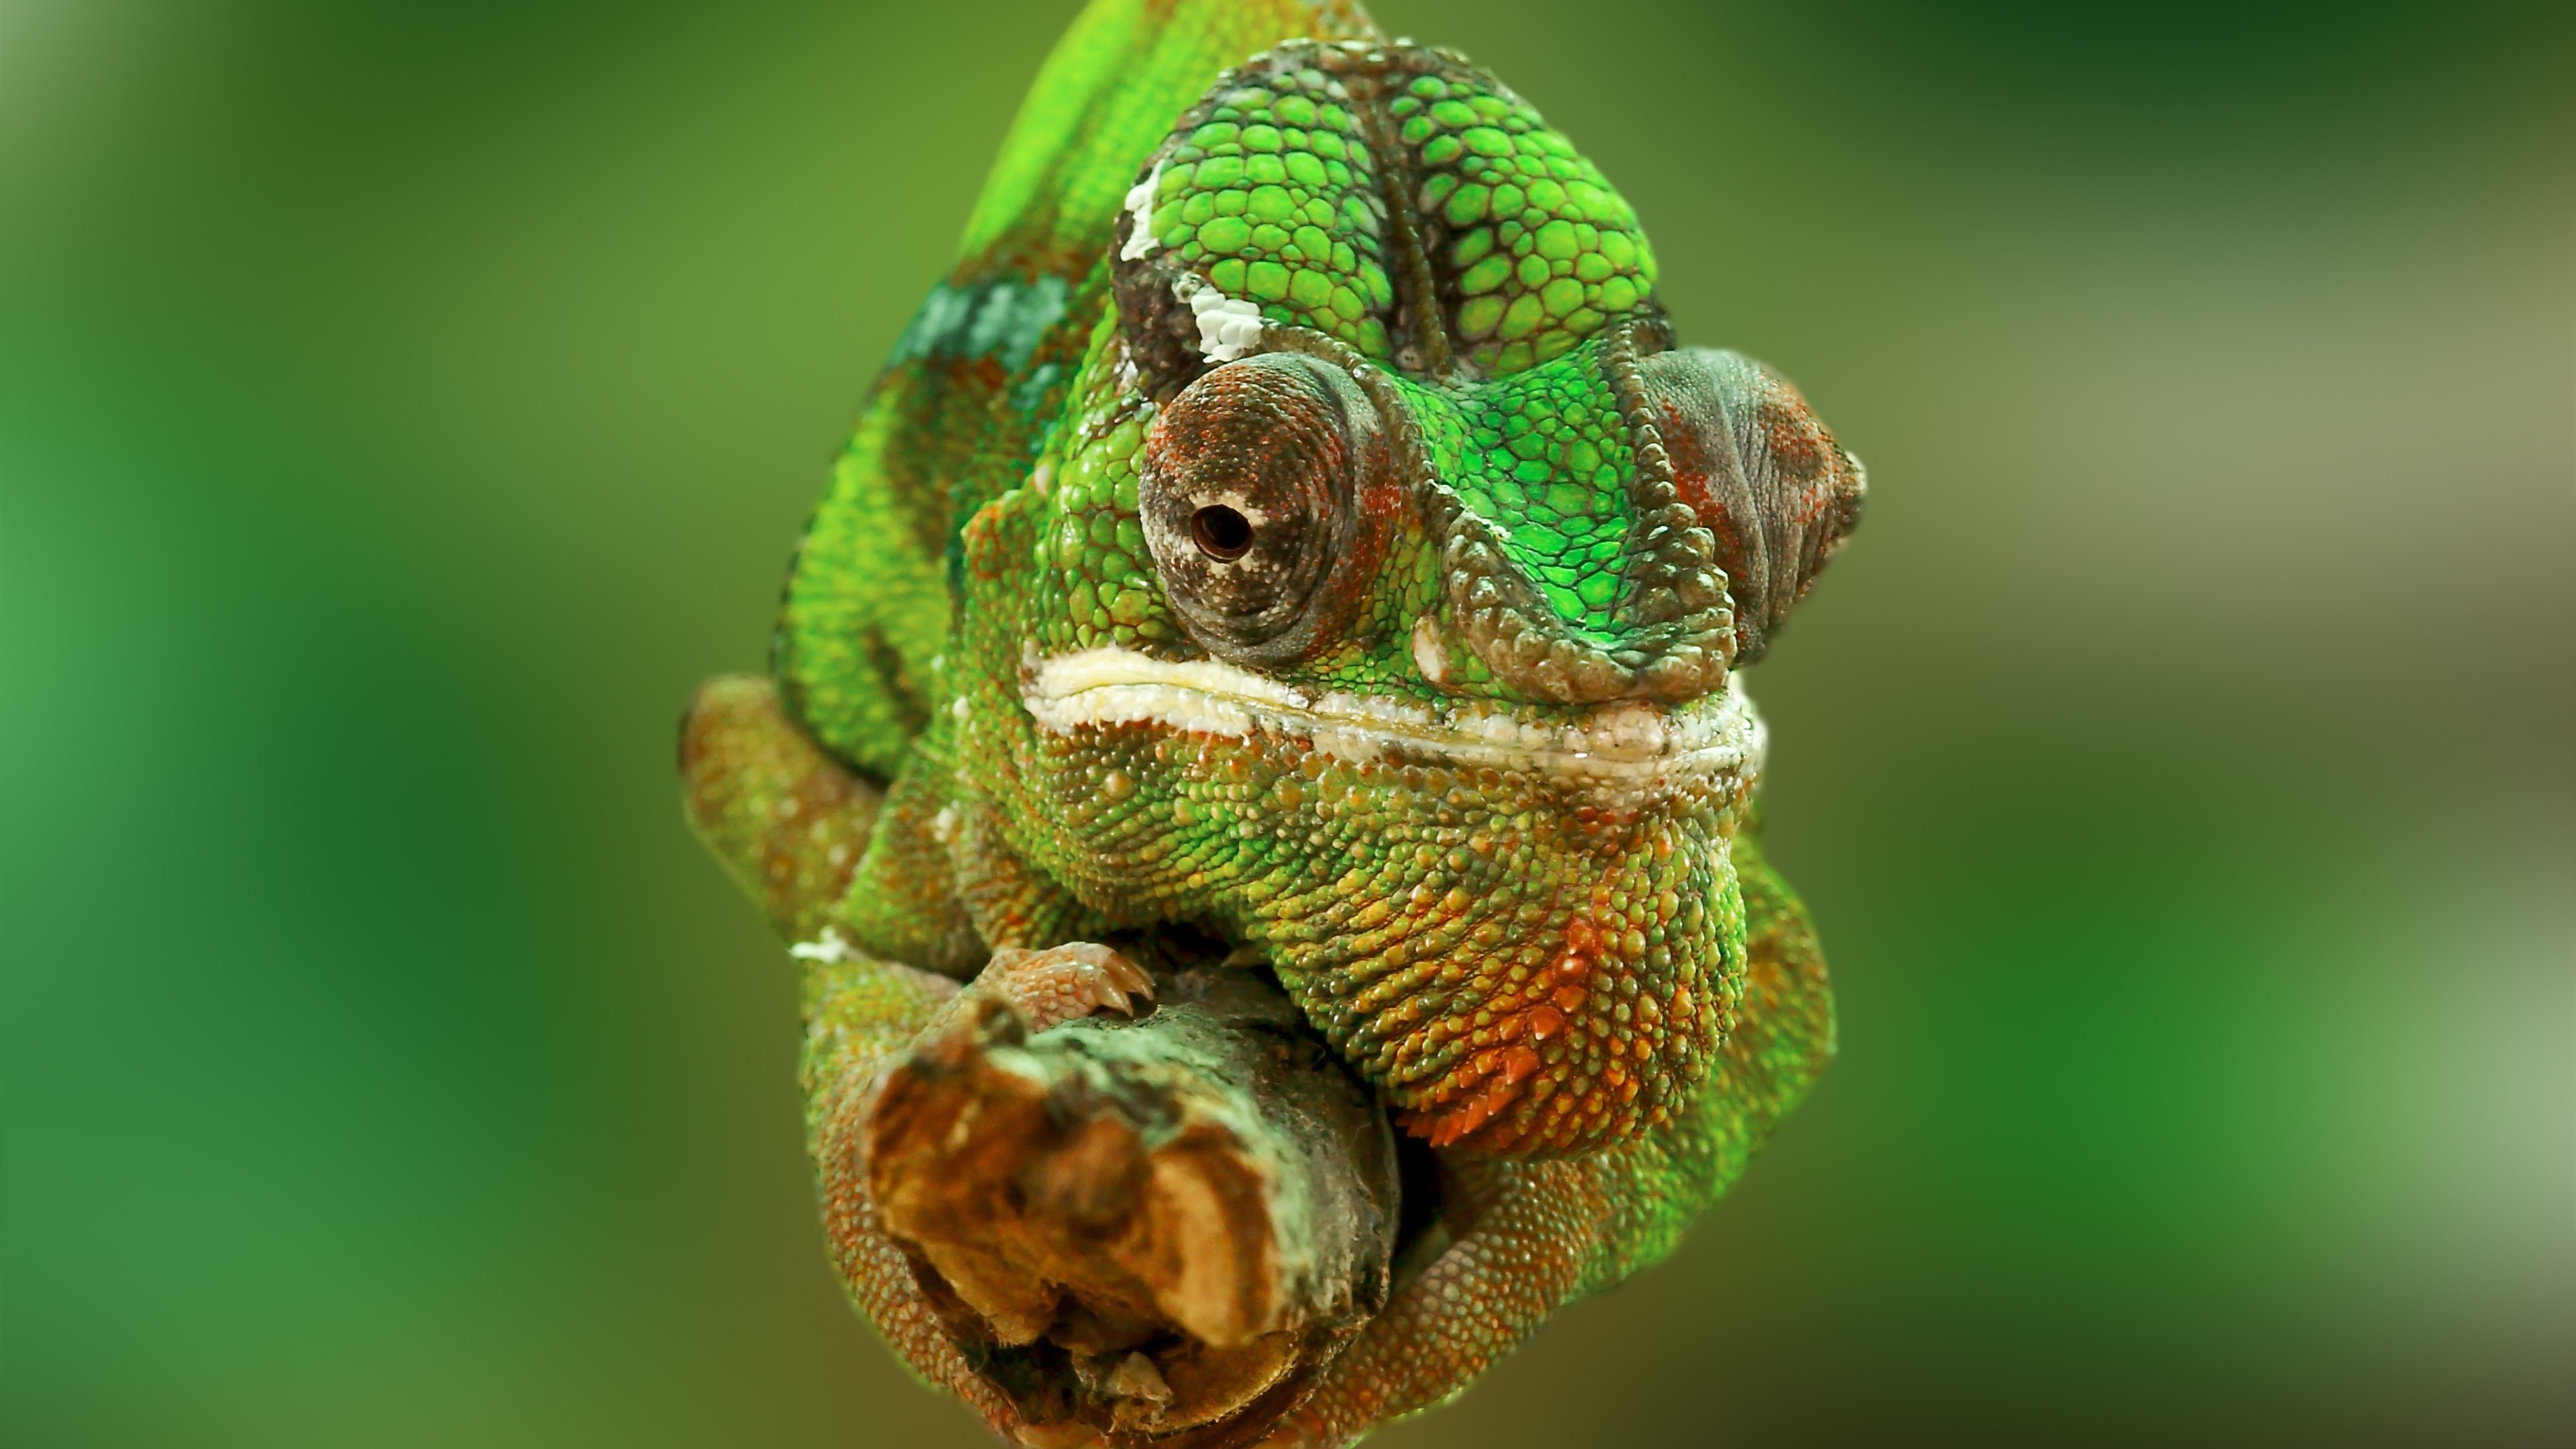 4k Wallpaper 3d National Geographic Animals Chameleons Reptile Wallpapers Hd Desktop And